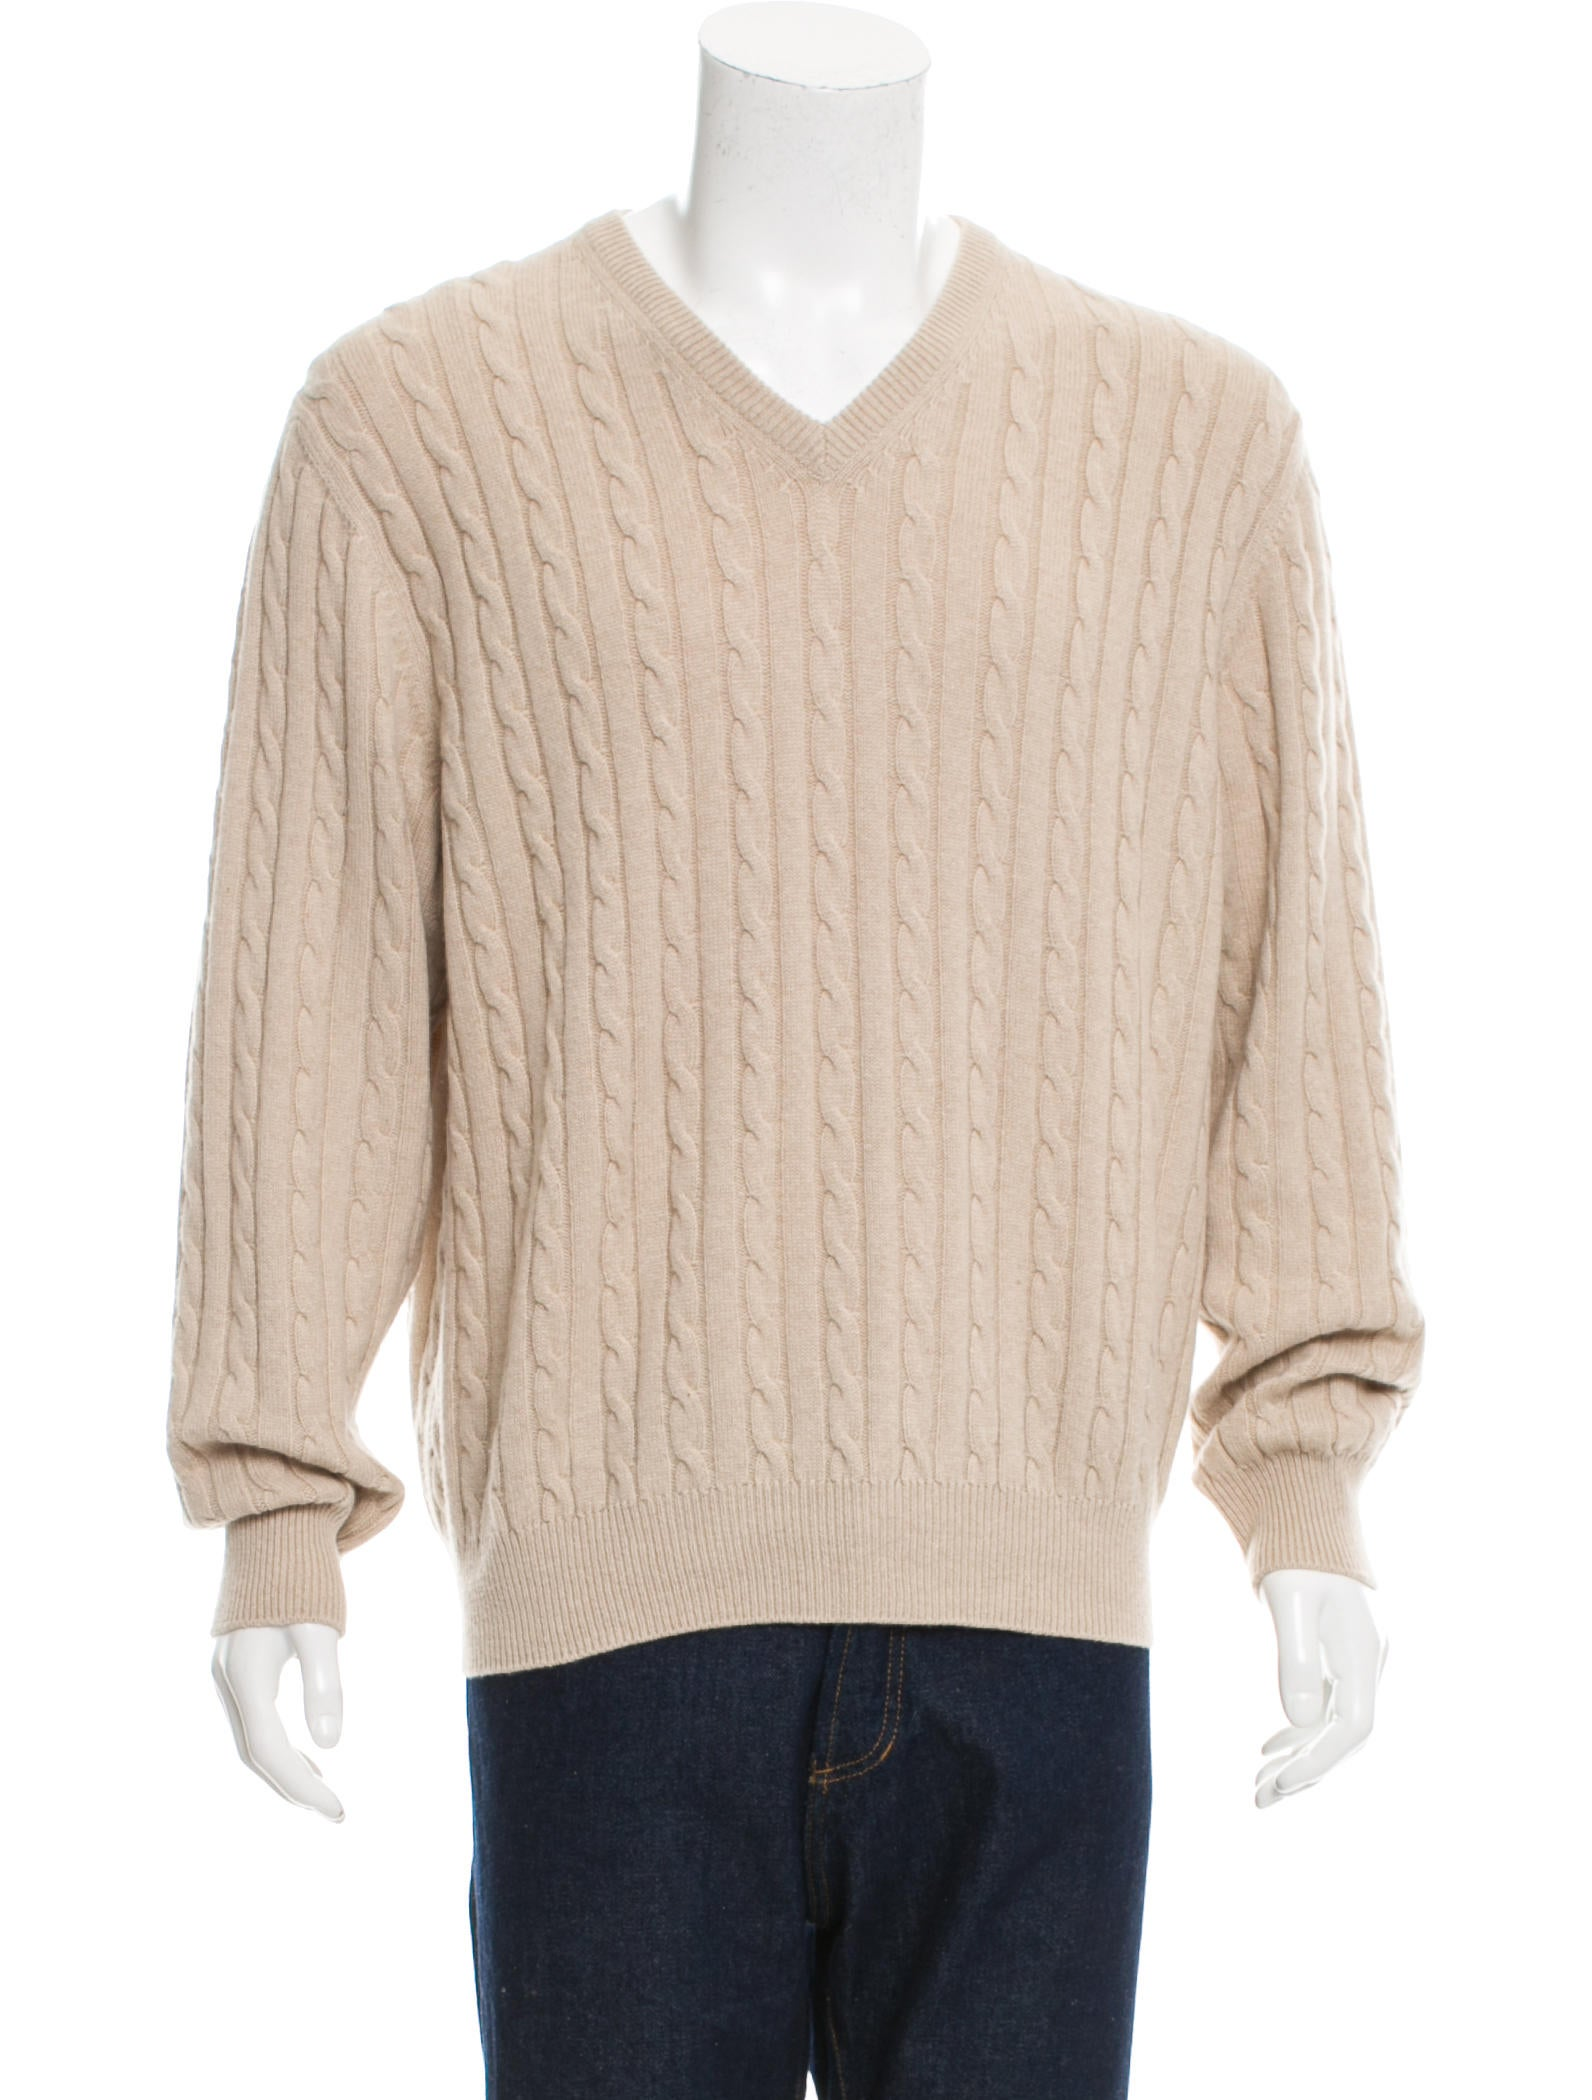 Loro Piana Baby Cashmere Cable Knit Sweater - Clothing - LOR35049 ...